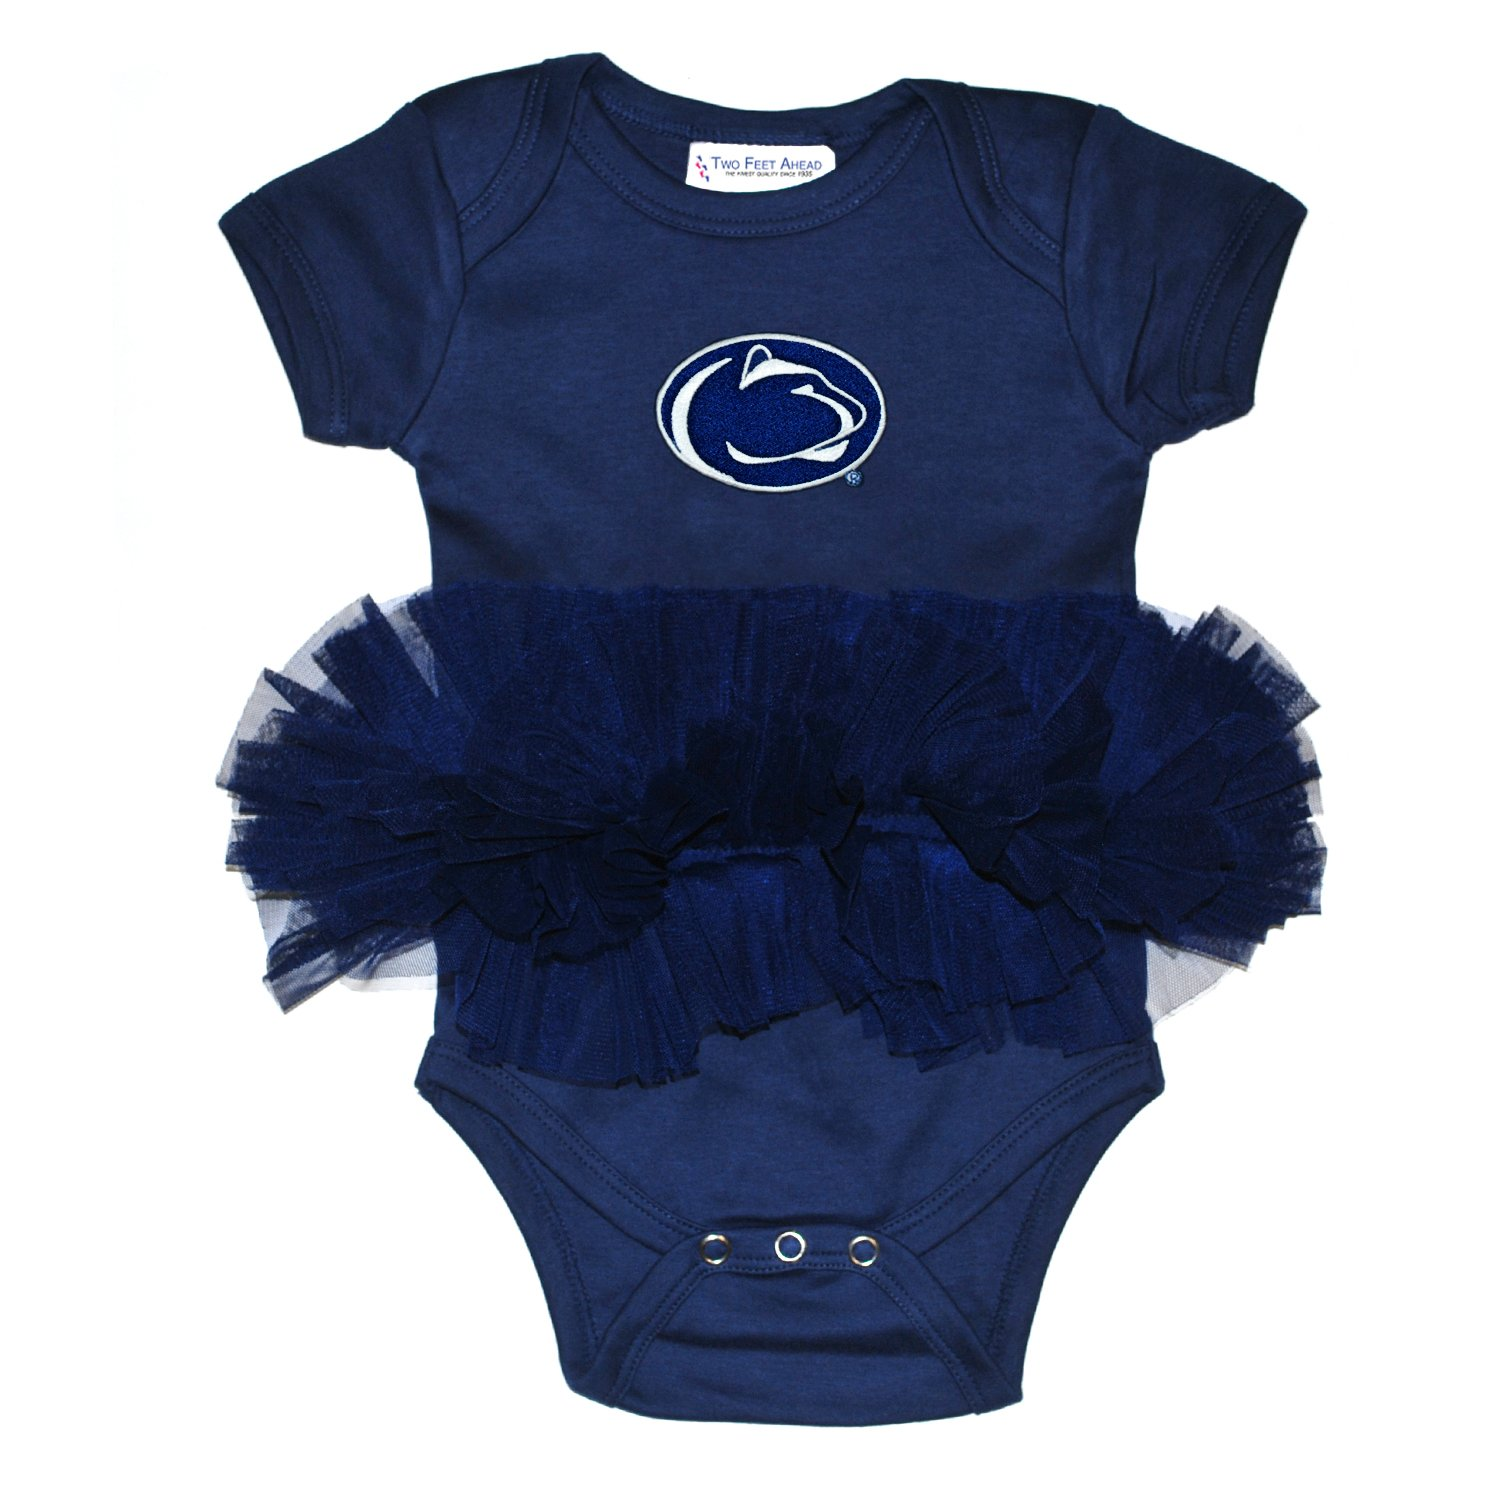 e911a55a0 Amazon.com: Penn State Nittany Lions Newborn Infant Tutu Creeper Bodysuit  (12 Months): Clothing